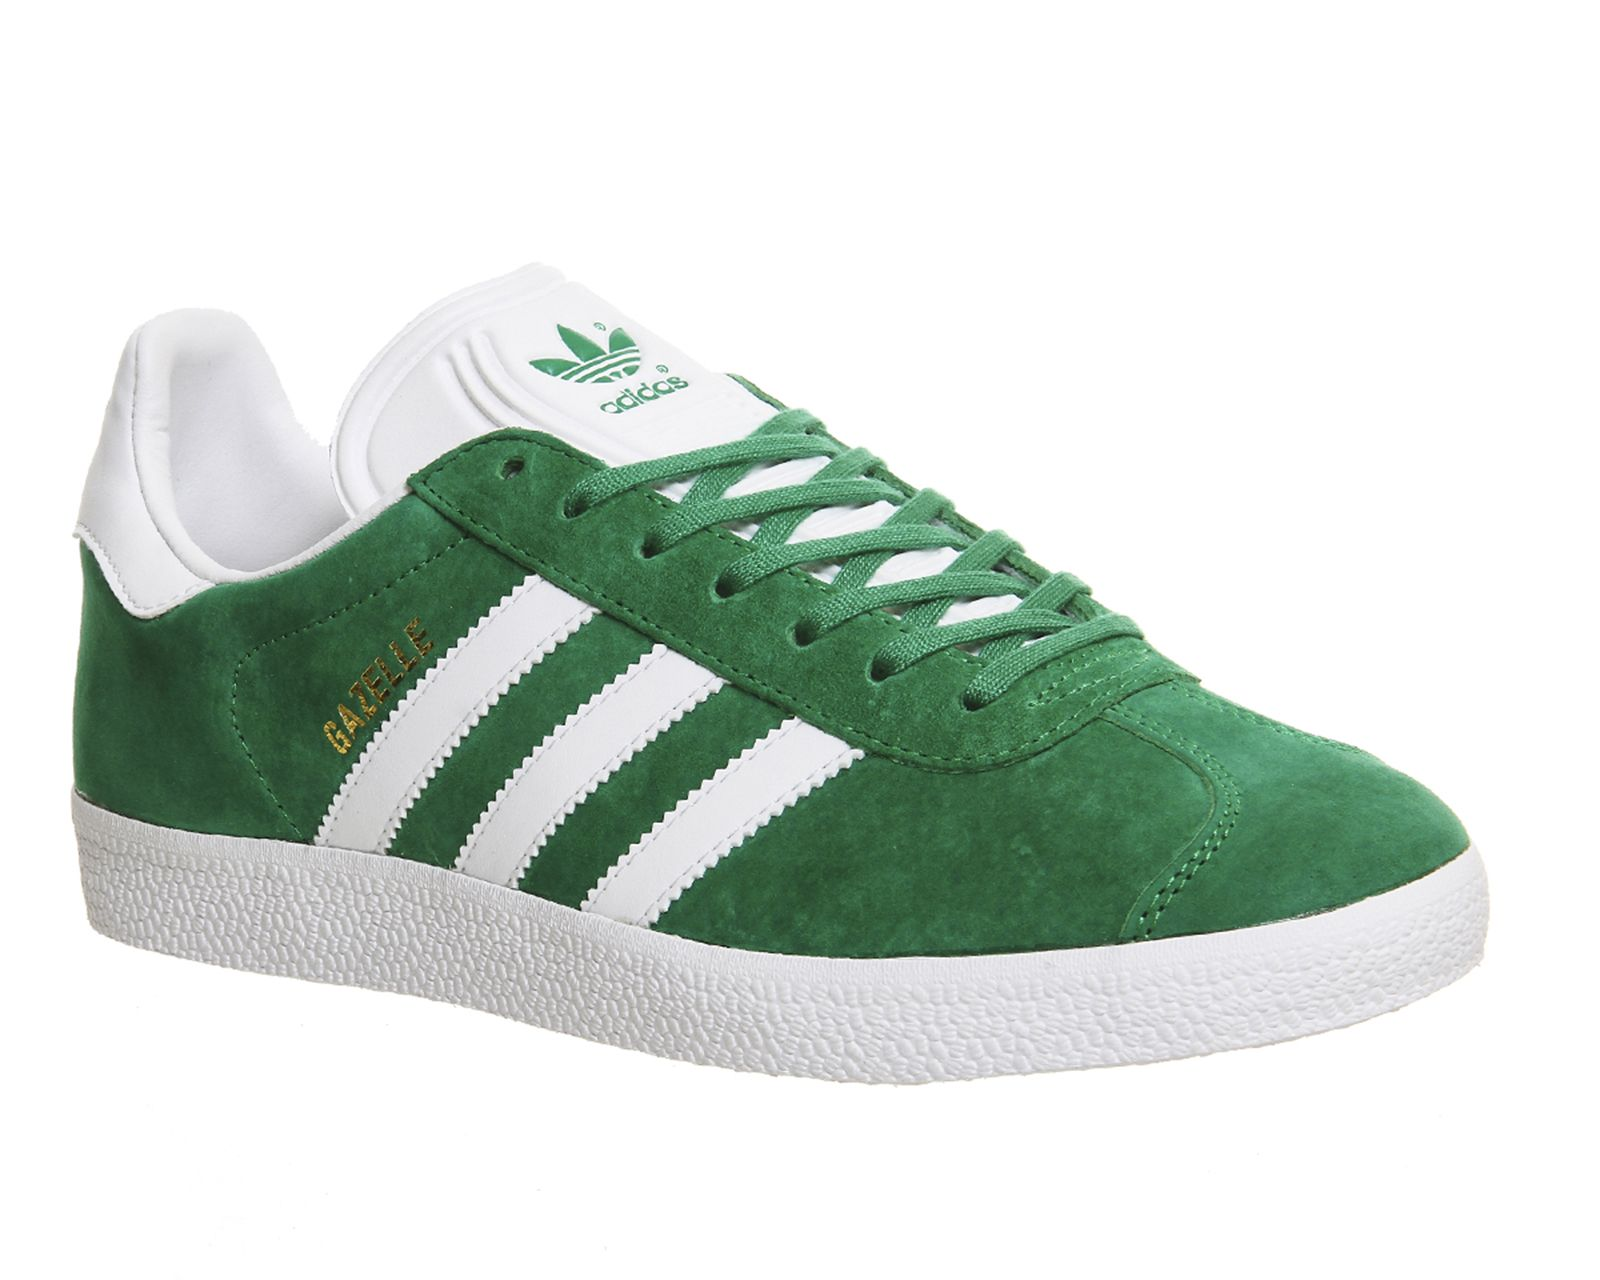 Adidas Gazelle Green White - His trainers